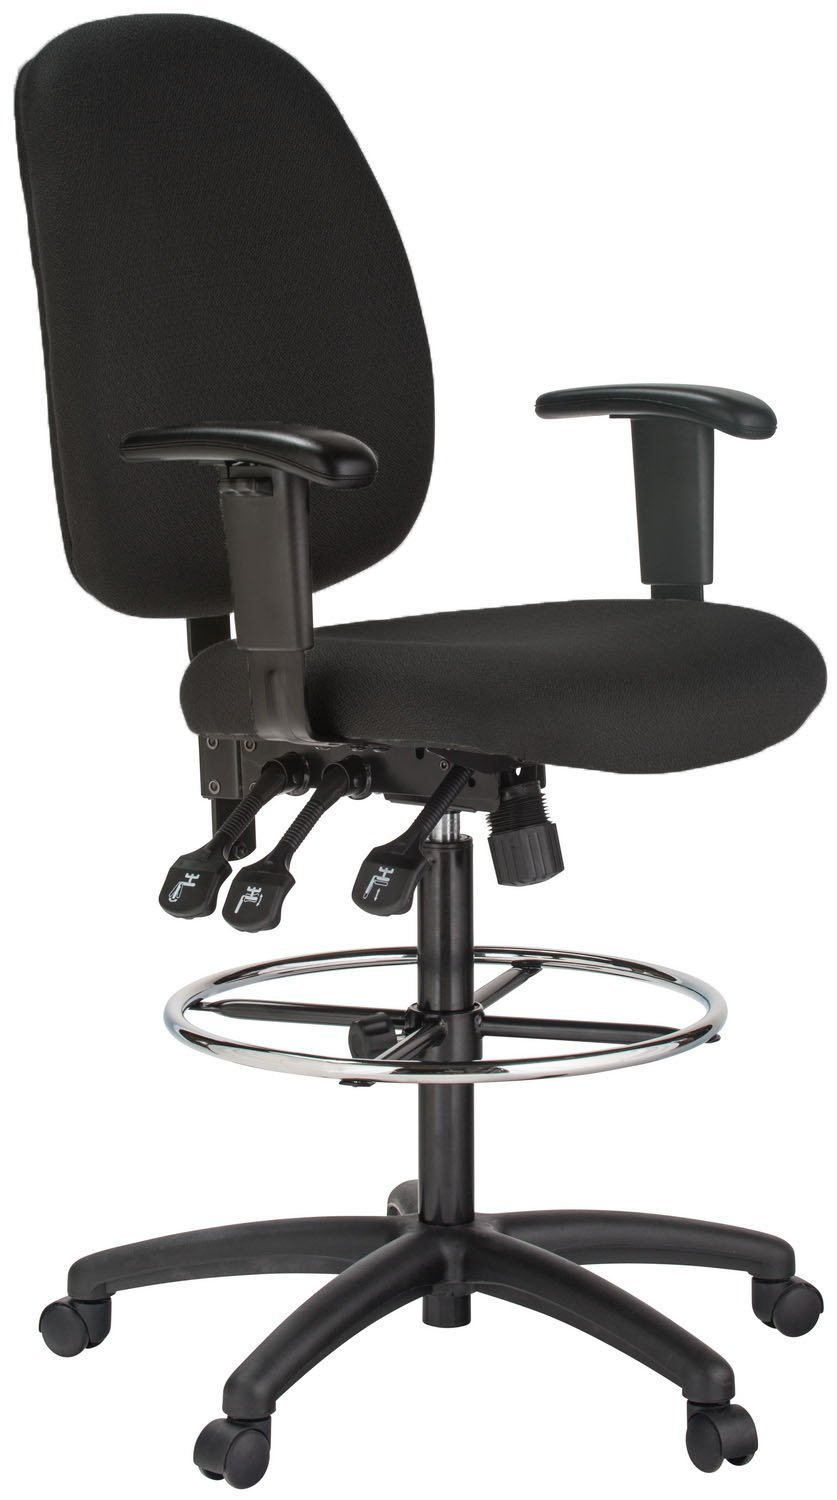 Harwick Black Fabric Ergonomic Adjustable Drafting Chair